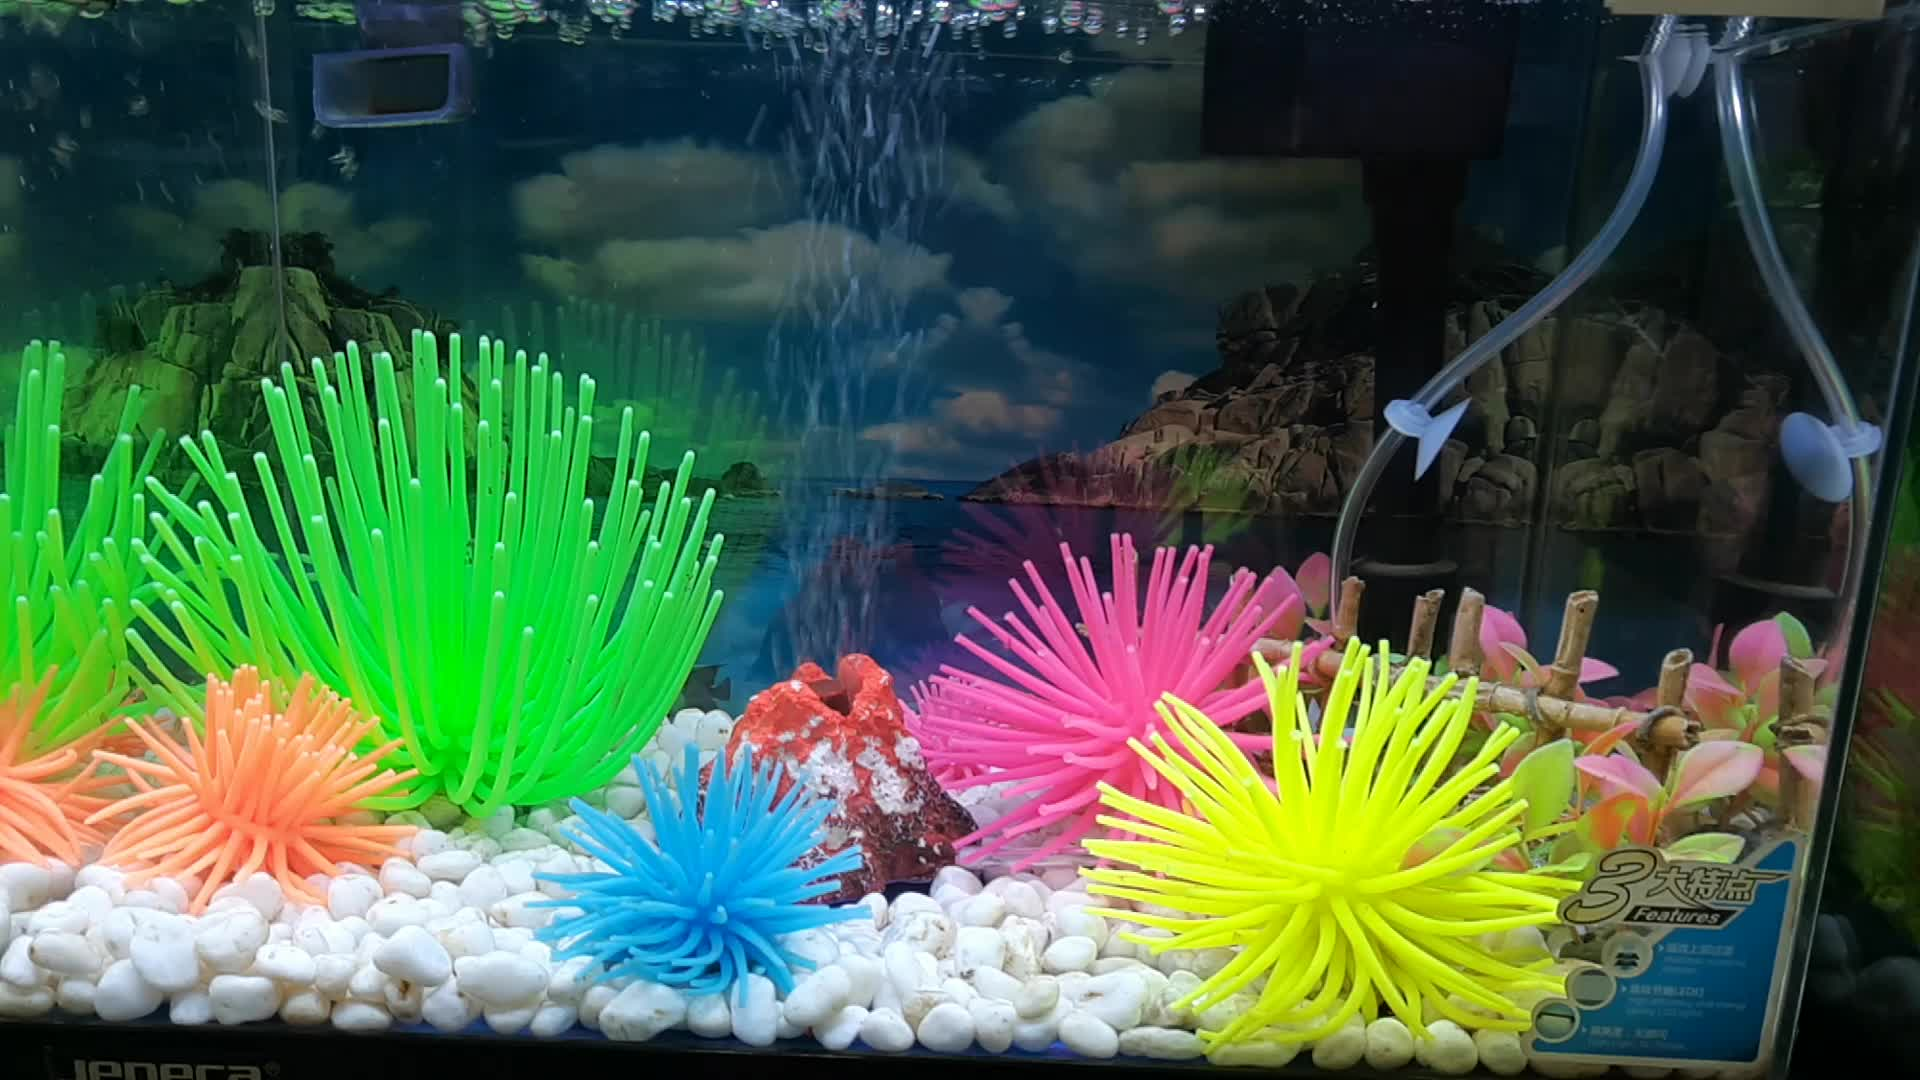 Fish Tank Decor Simulation Under Sea World Sea urchin Artificial Coral Plant Aquarium Ornament